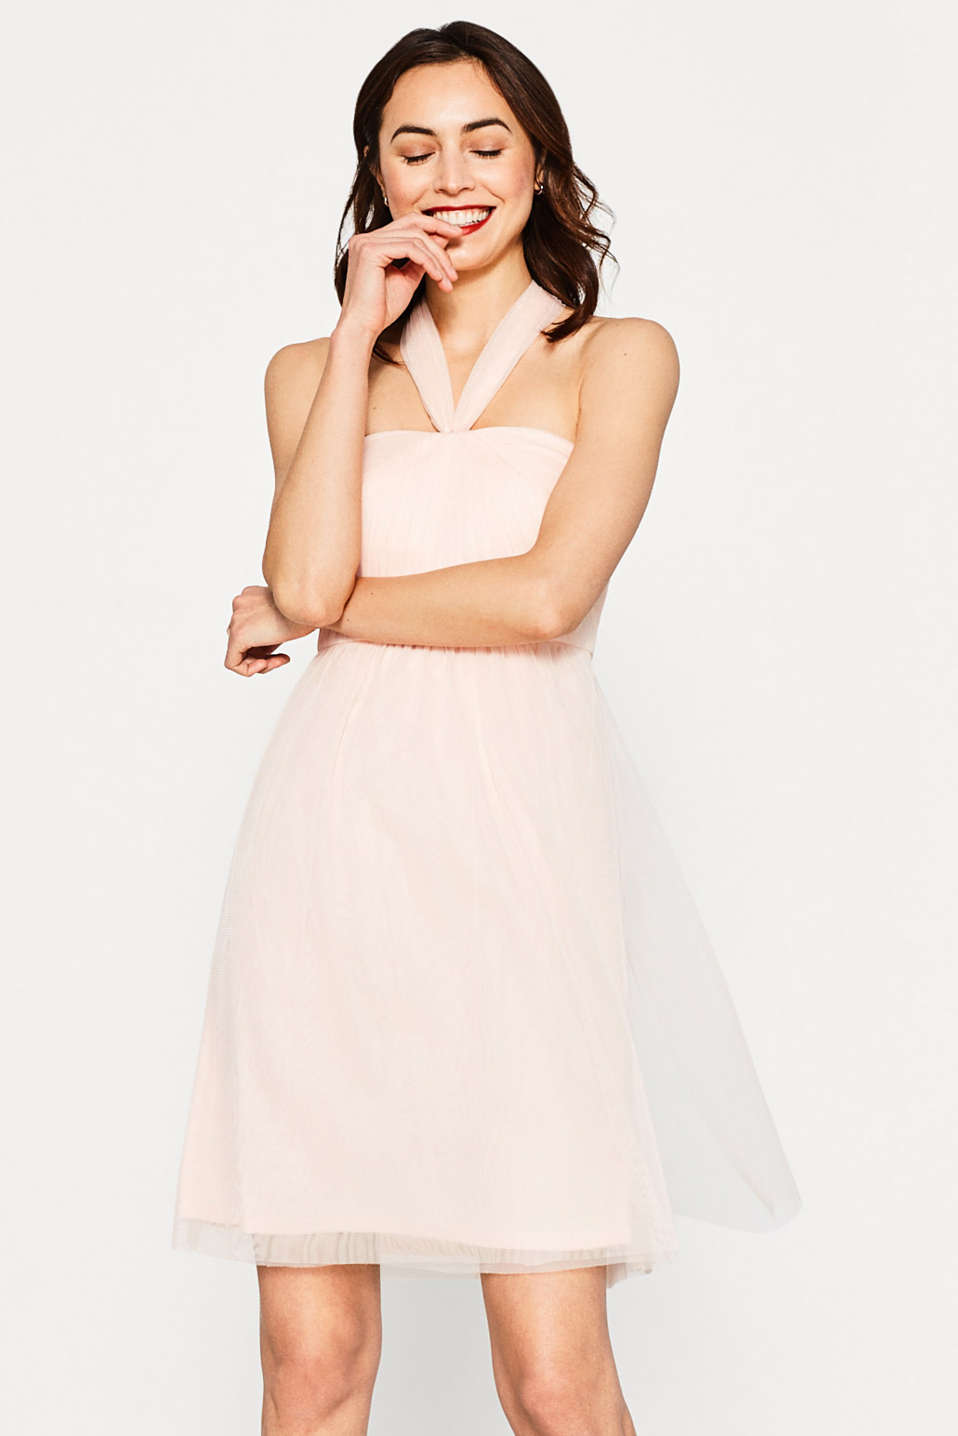 Delicate tulle dress in a versatile look